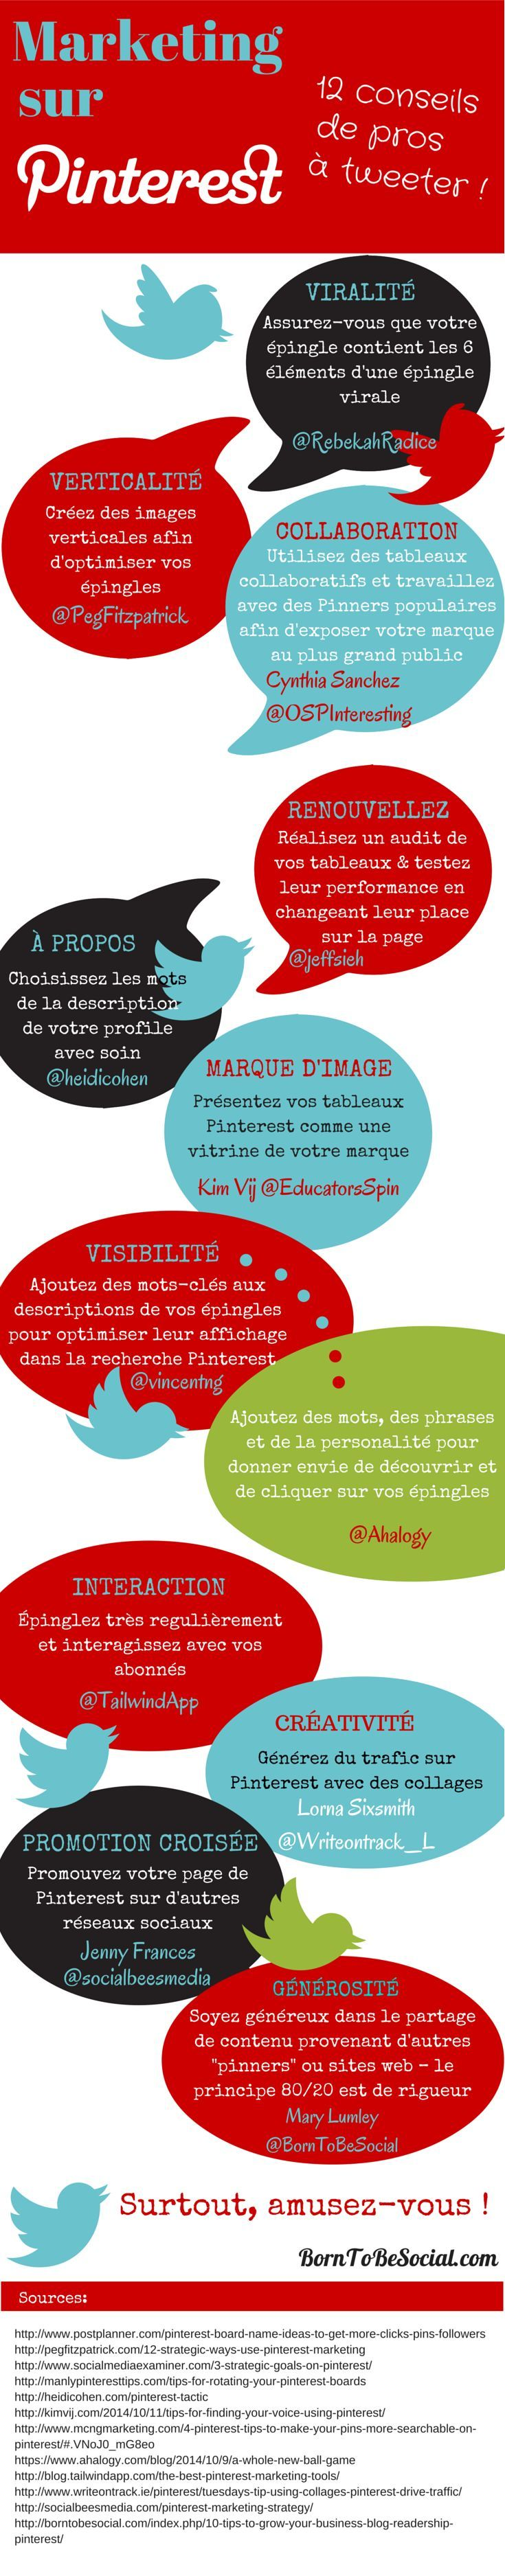 Marketing sur Pinterest : 12 conseils de pros [Infographie] | @borntobesocial